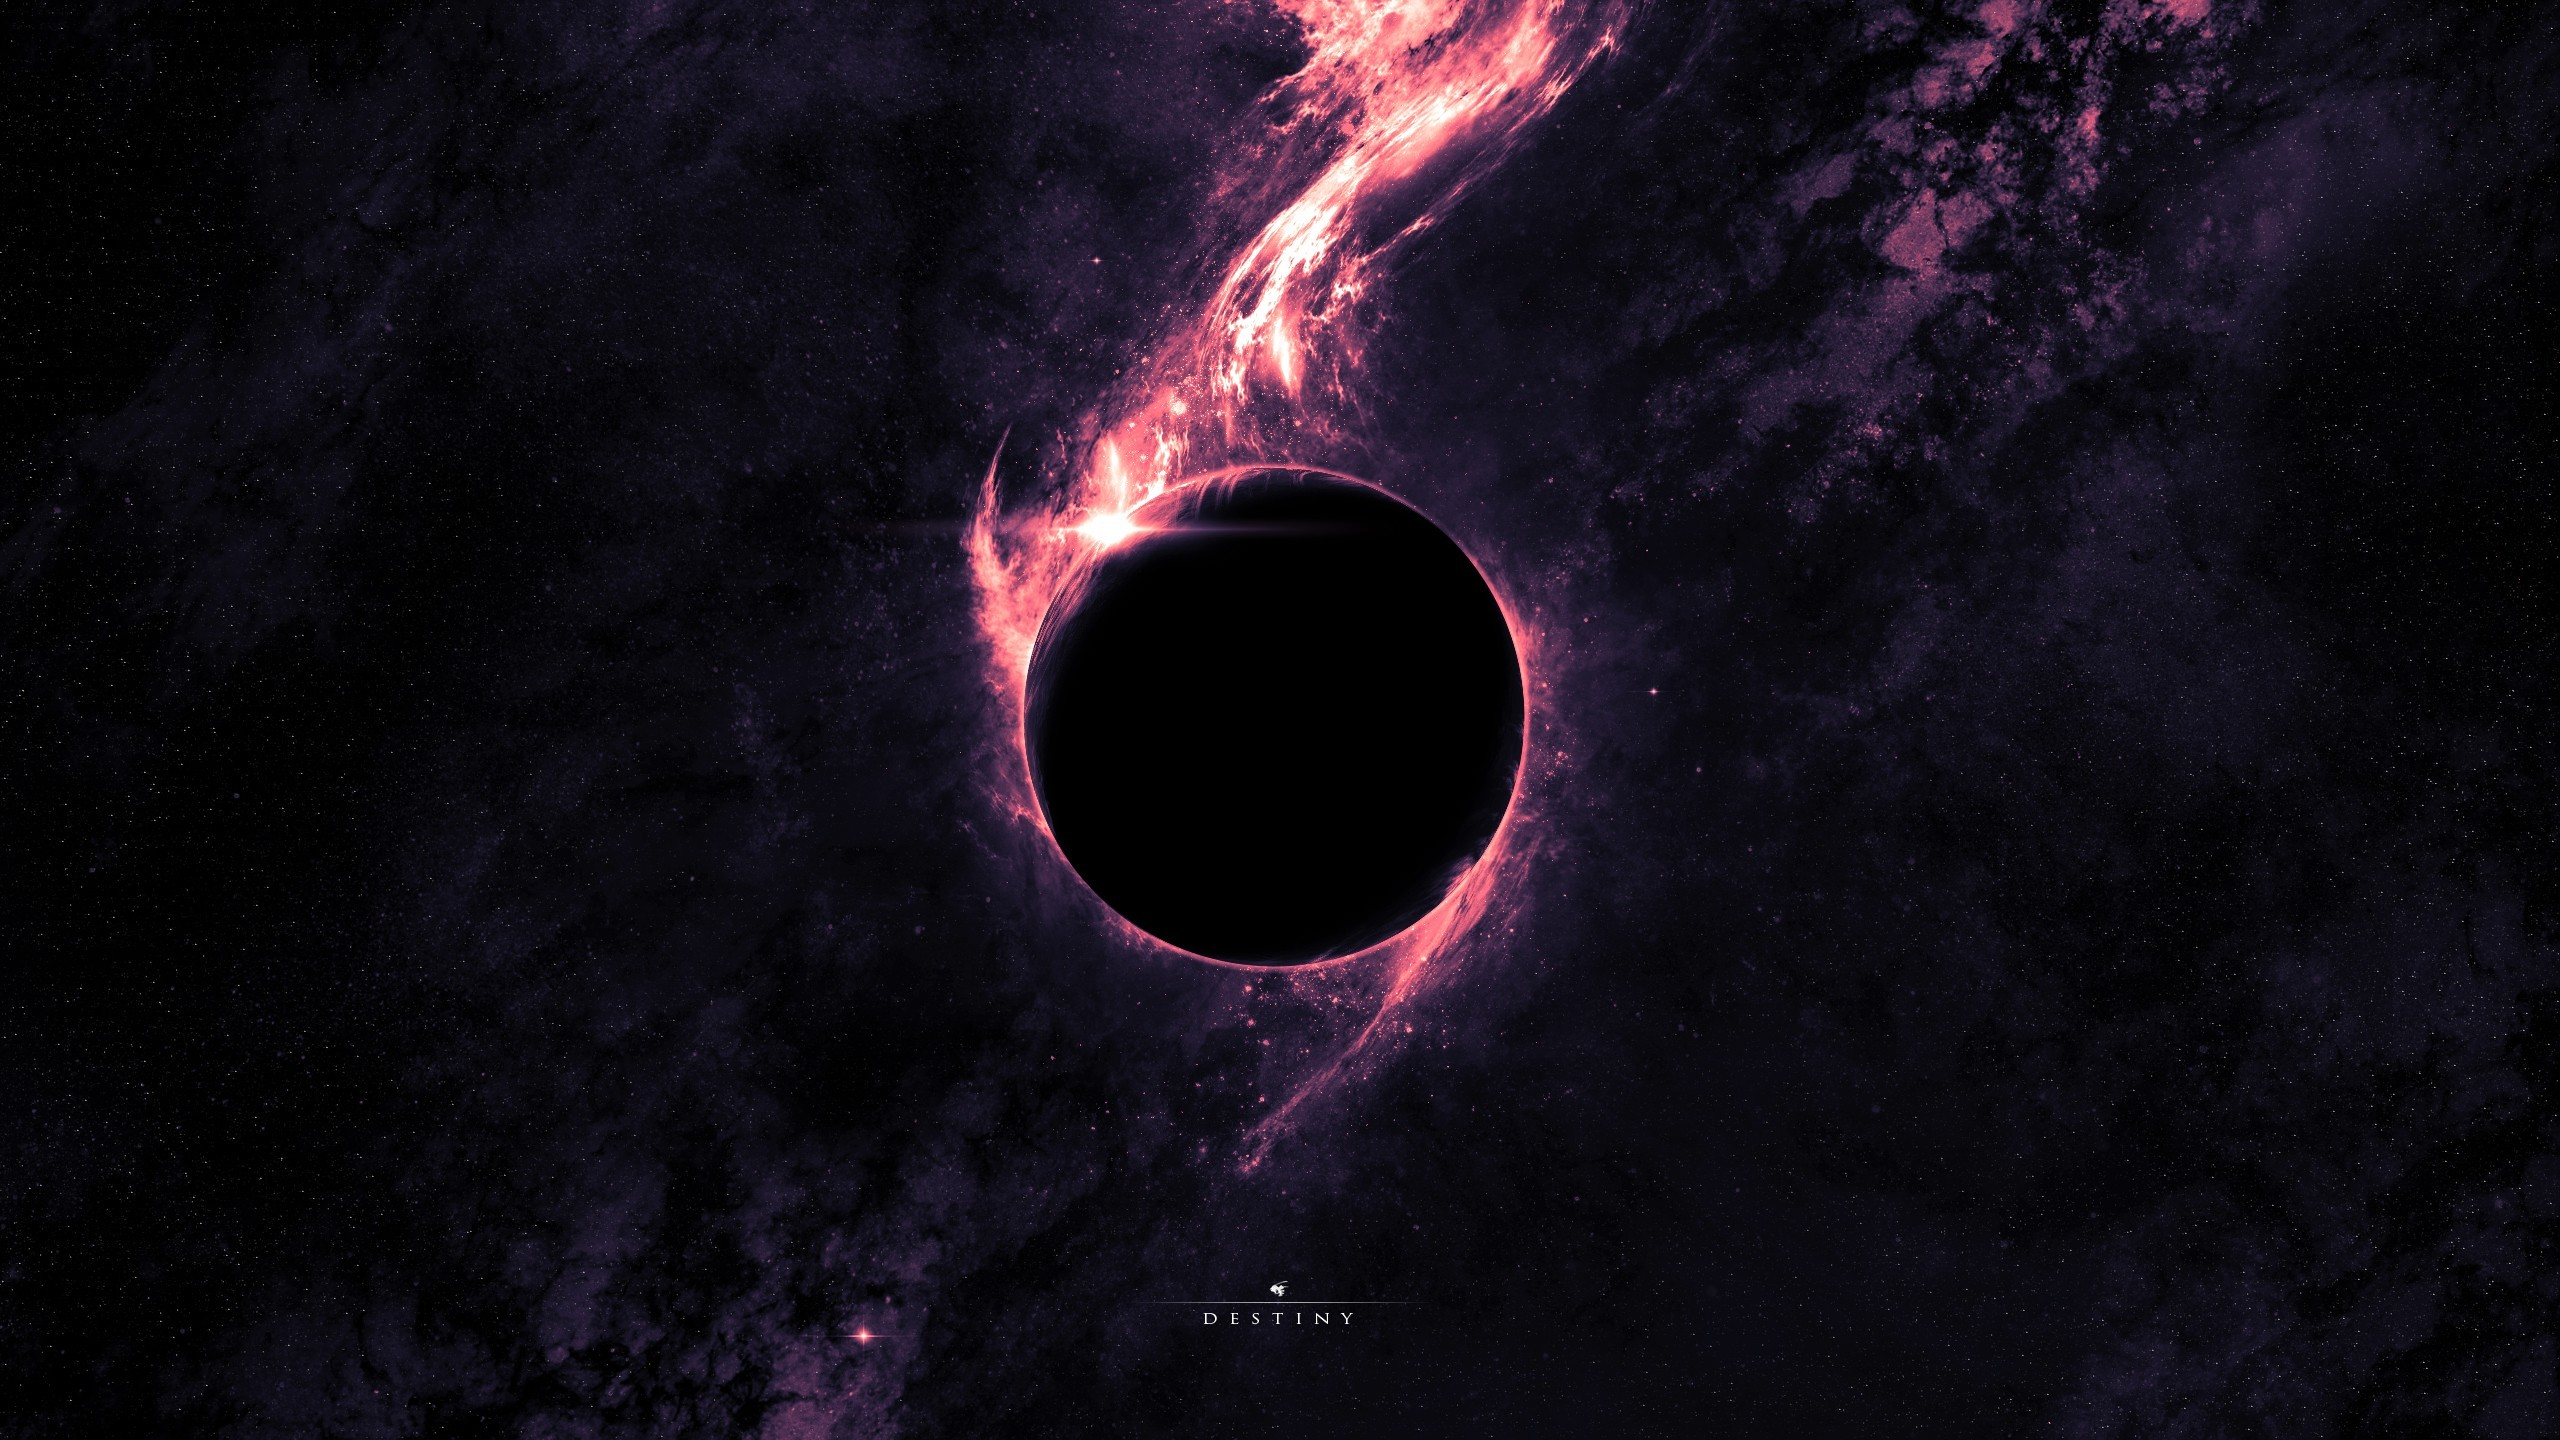 2560x1440 Space Black Hole wallpapers (16 Wallpapers)